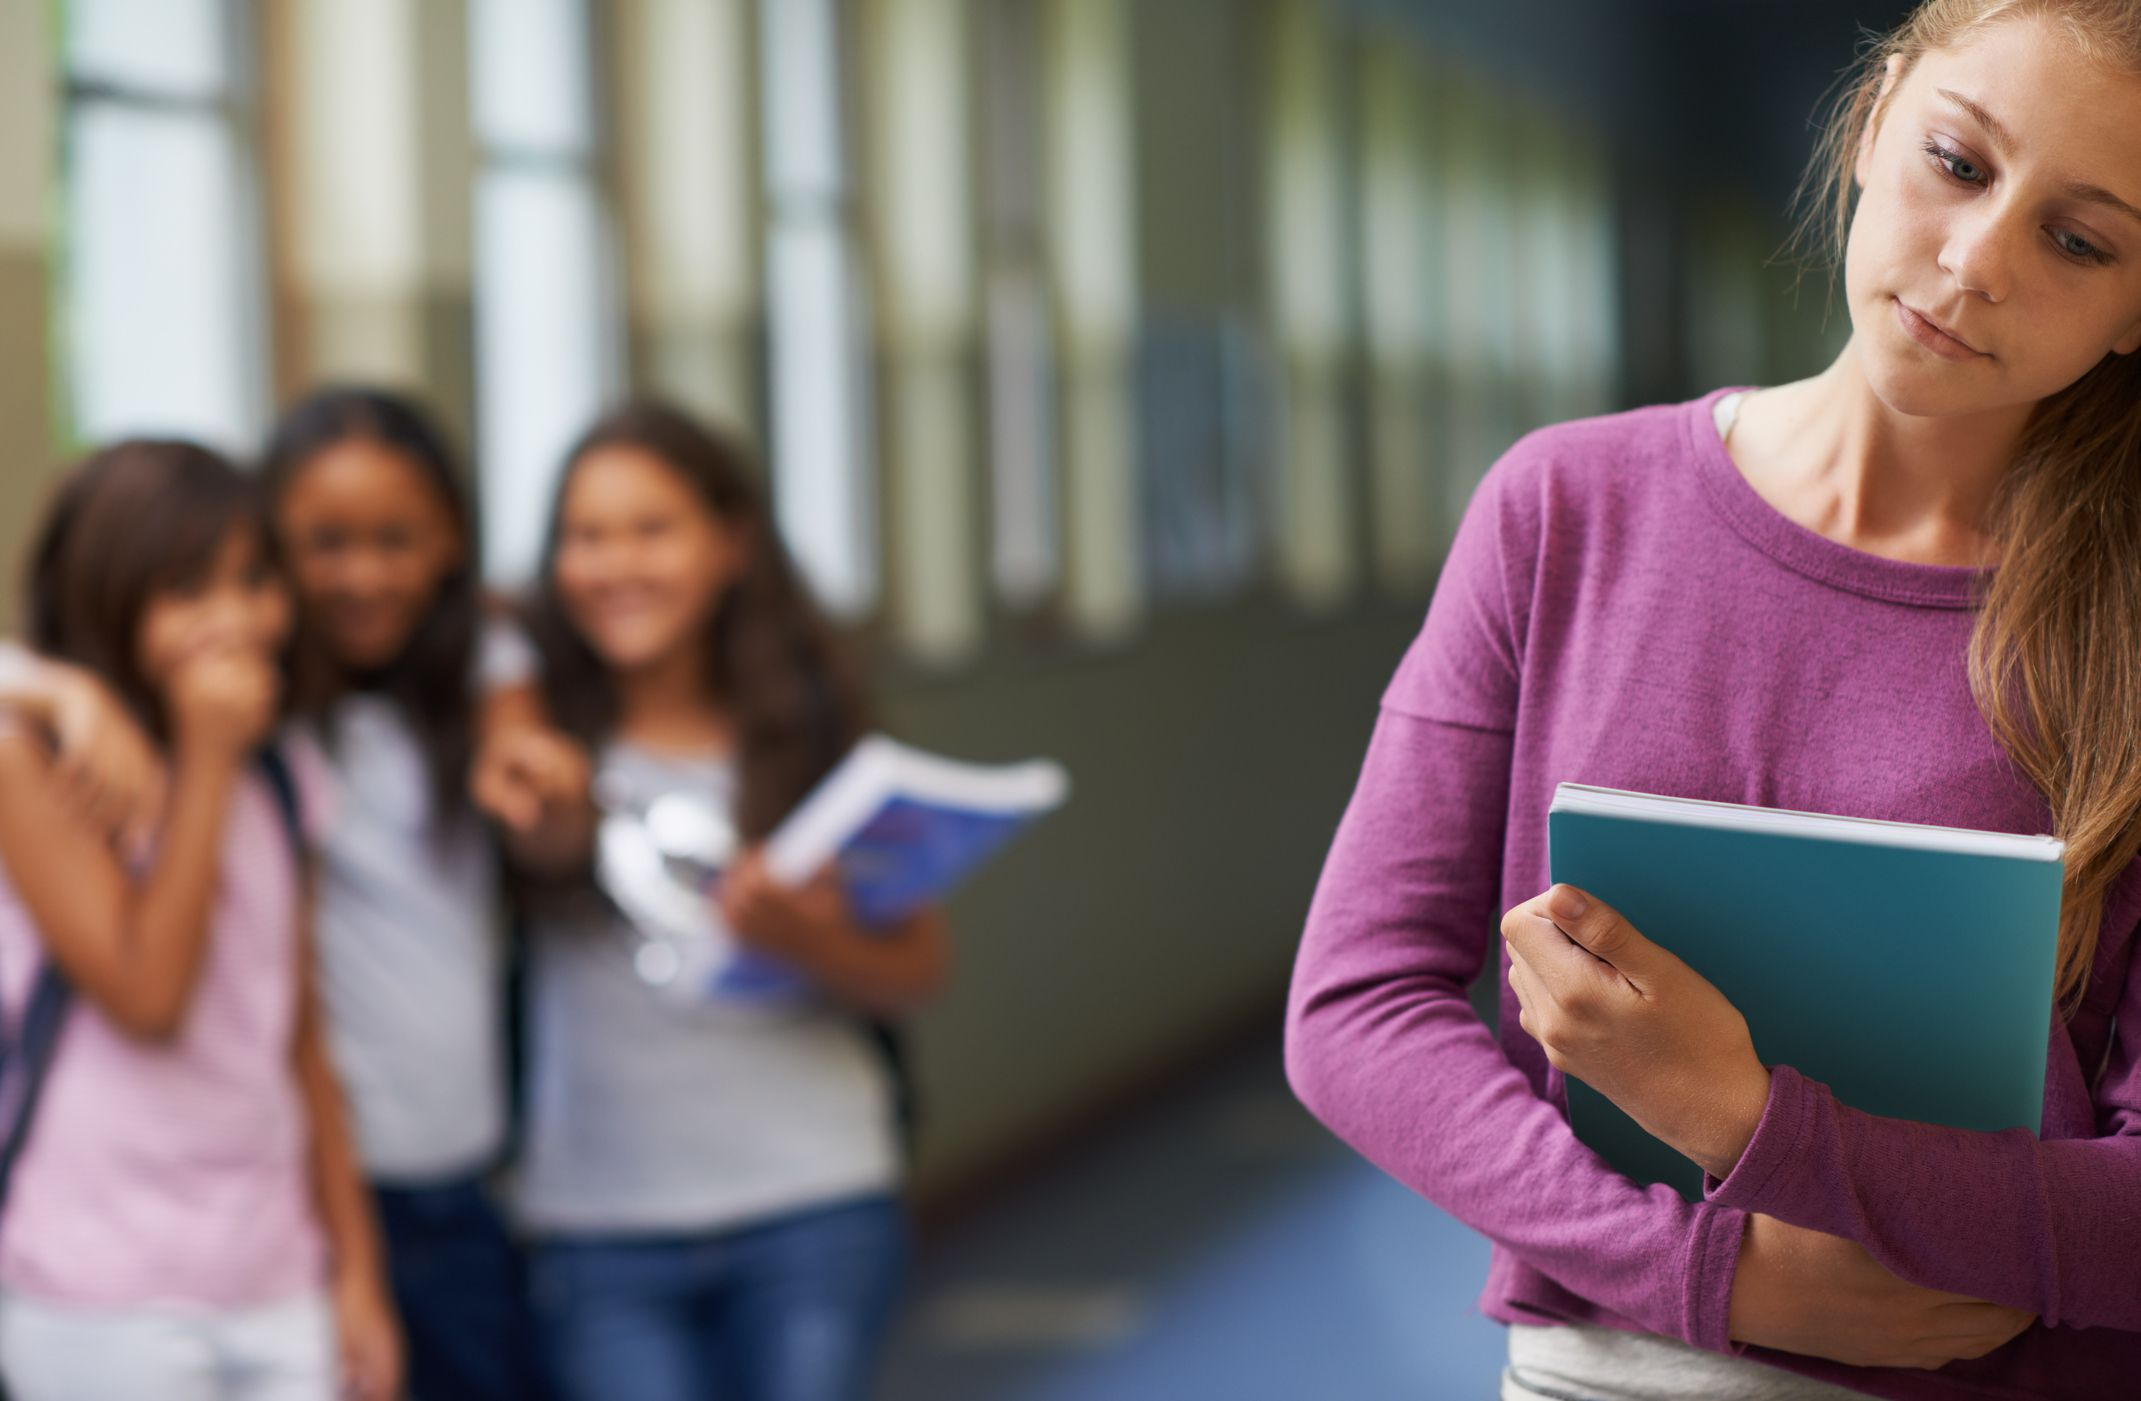 4 Tips For Parents And Teachers To Prevent Bullying